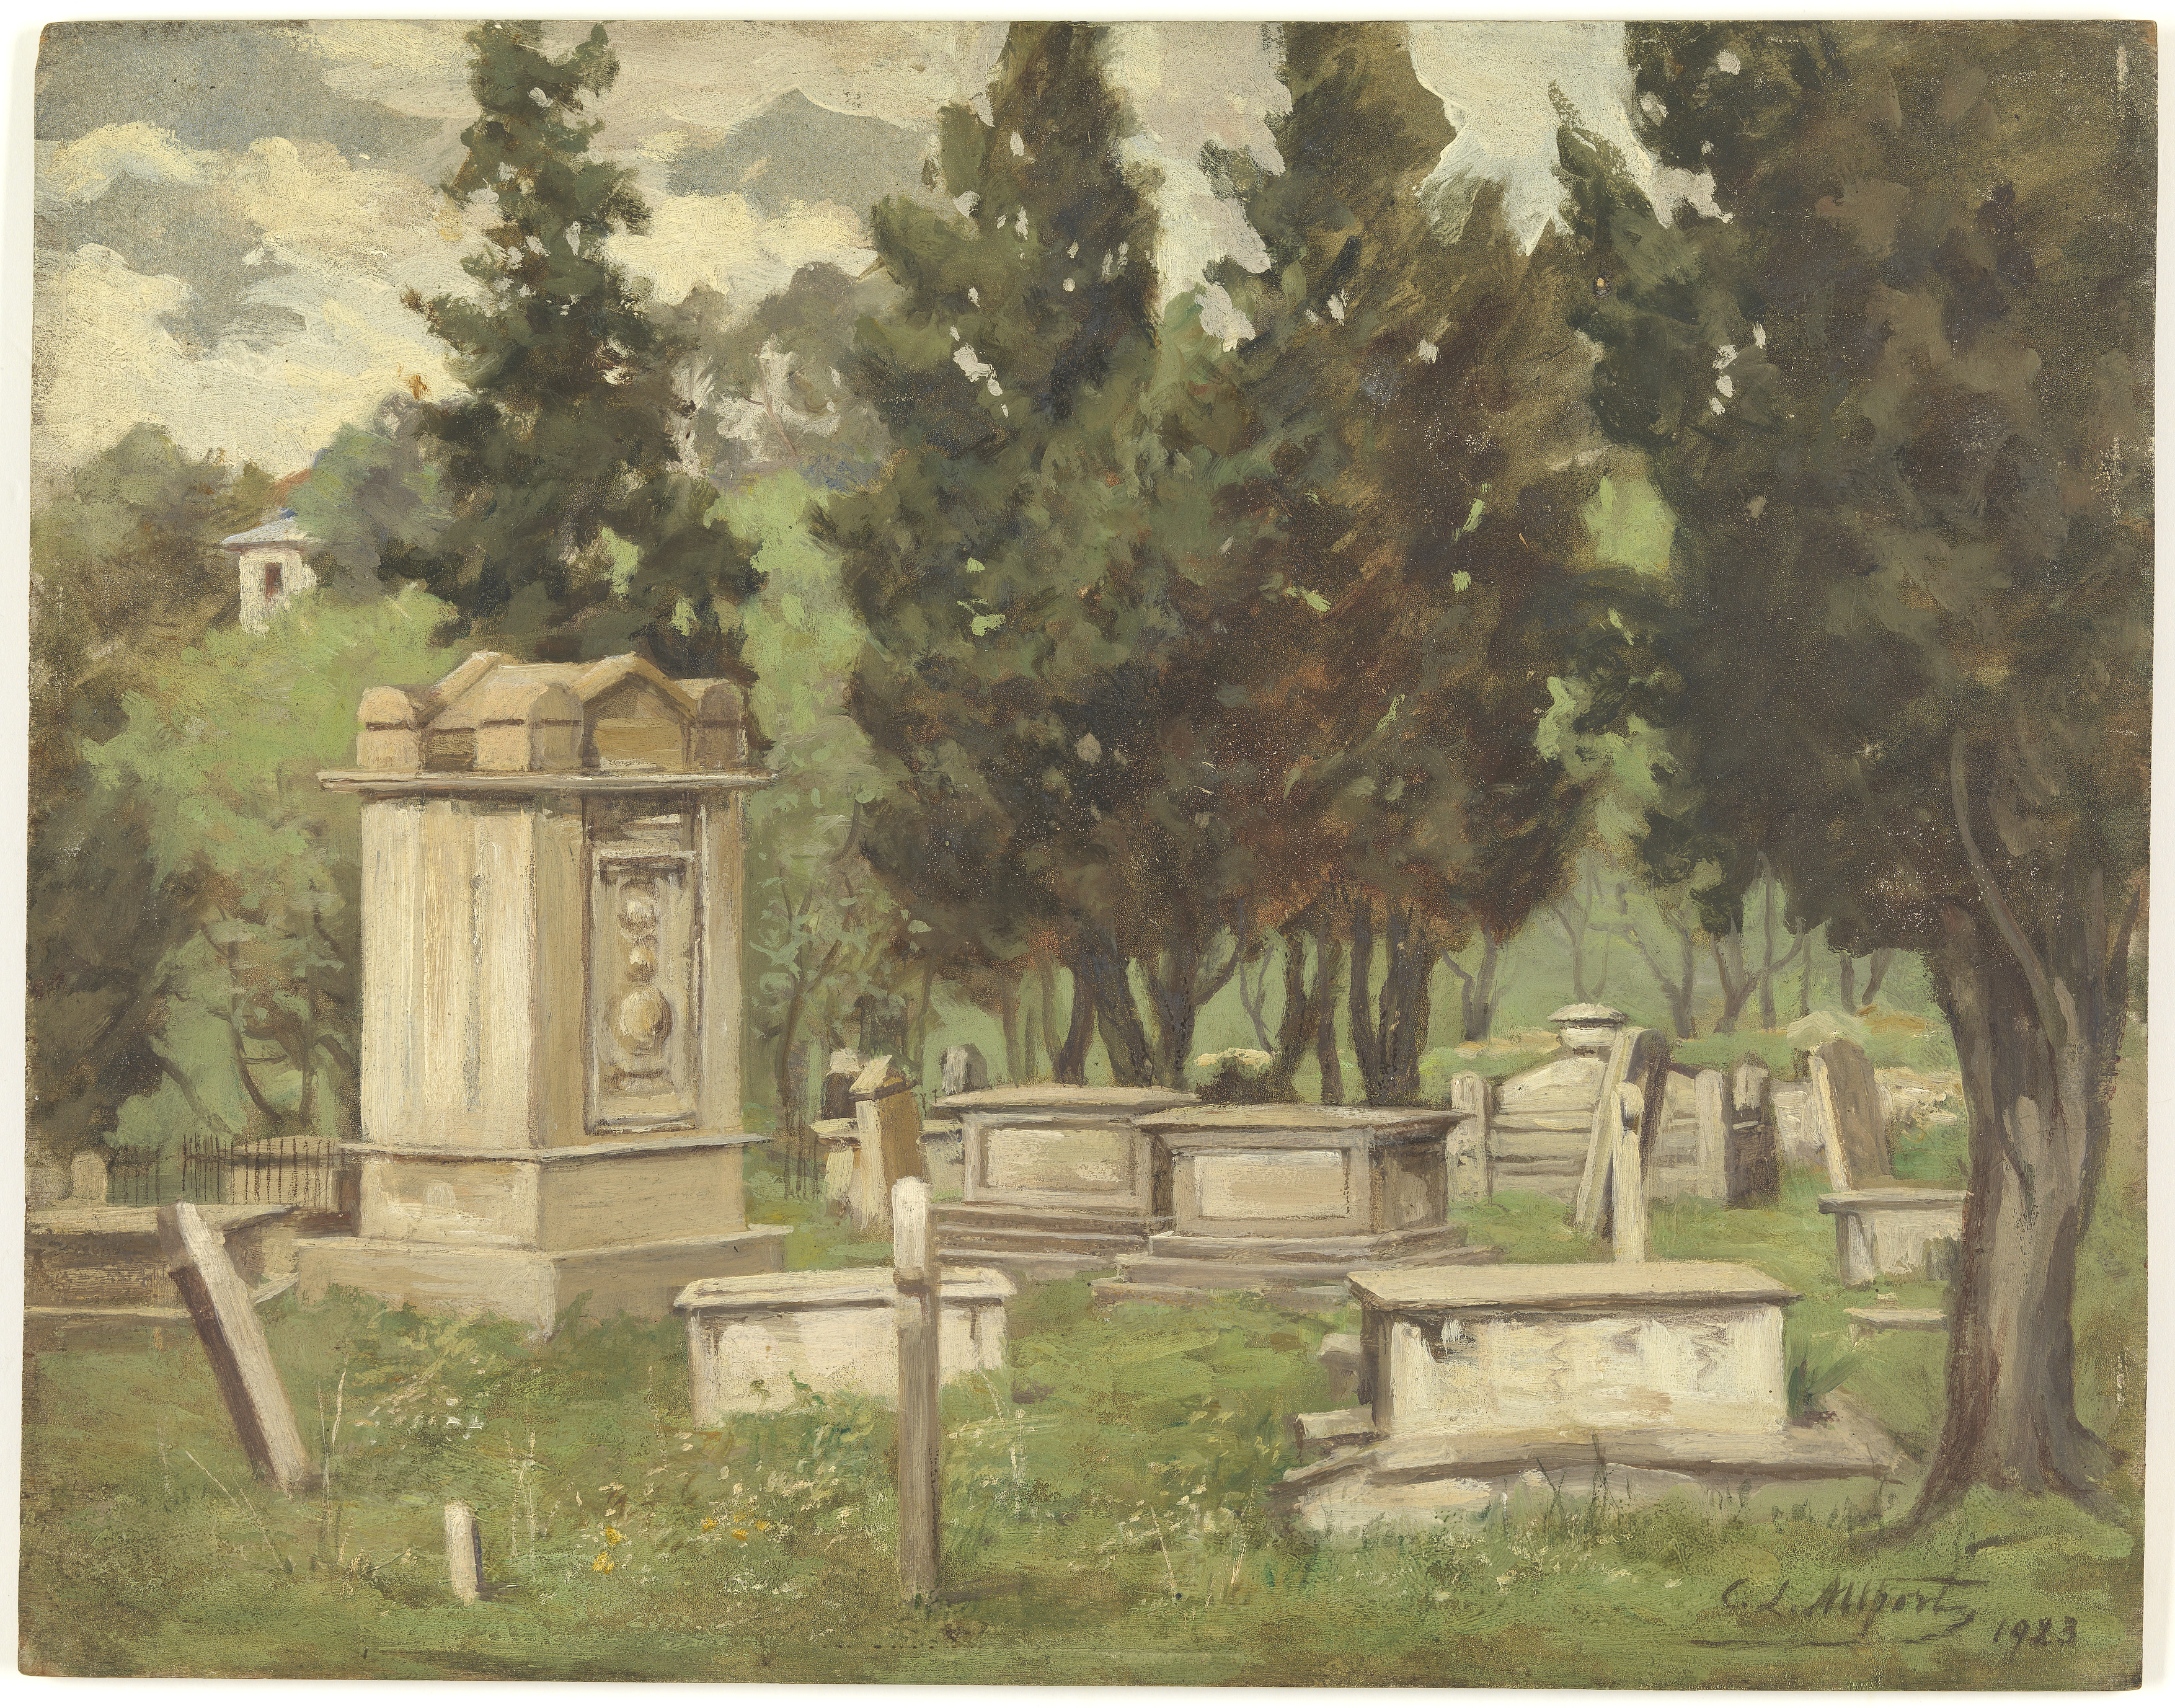 St David's Burial Ground 1923